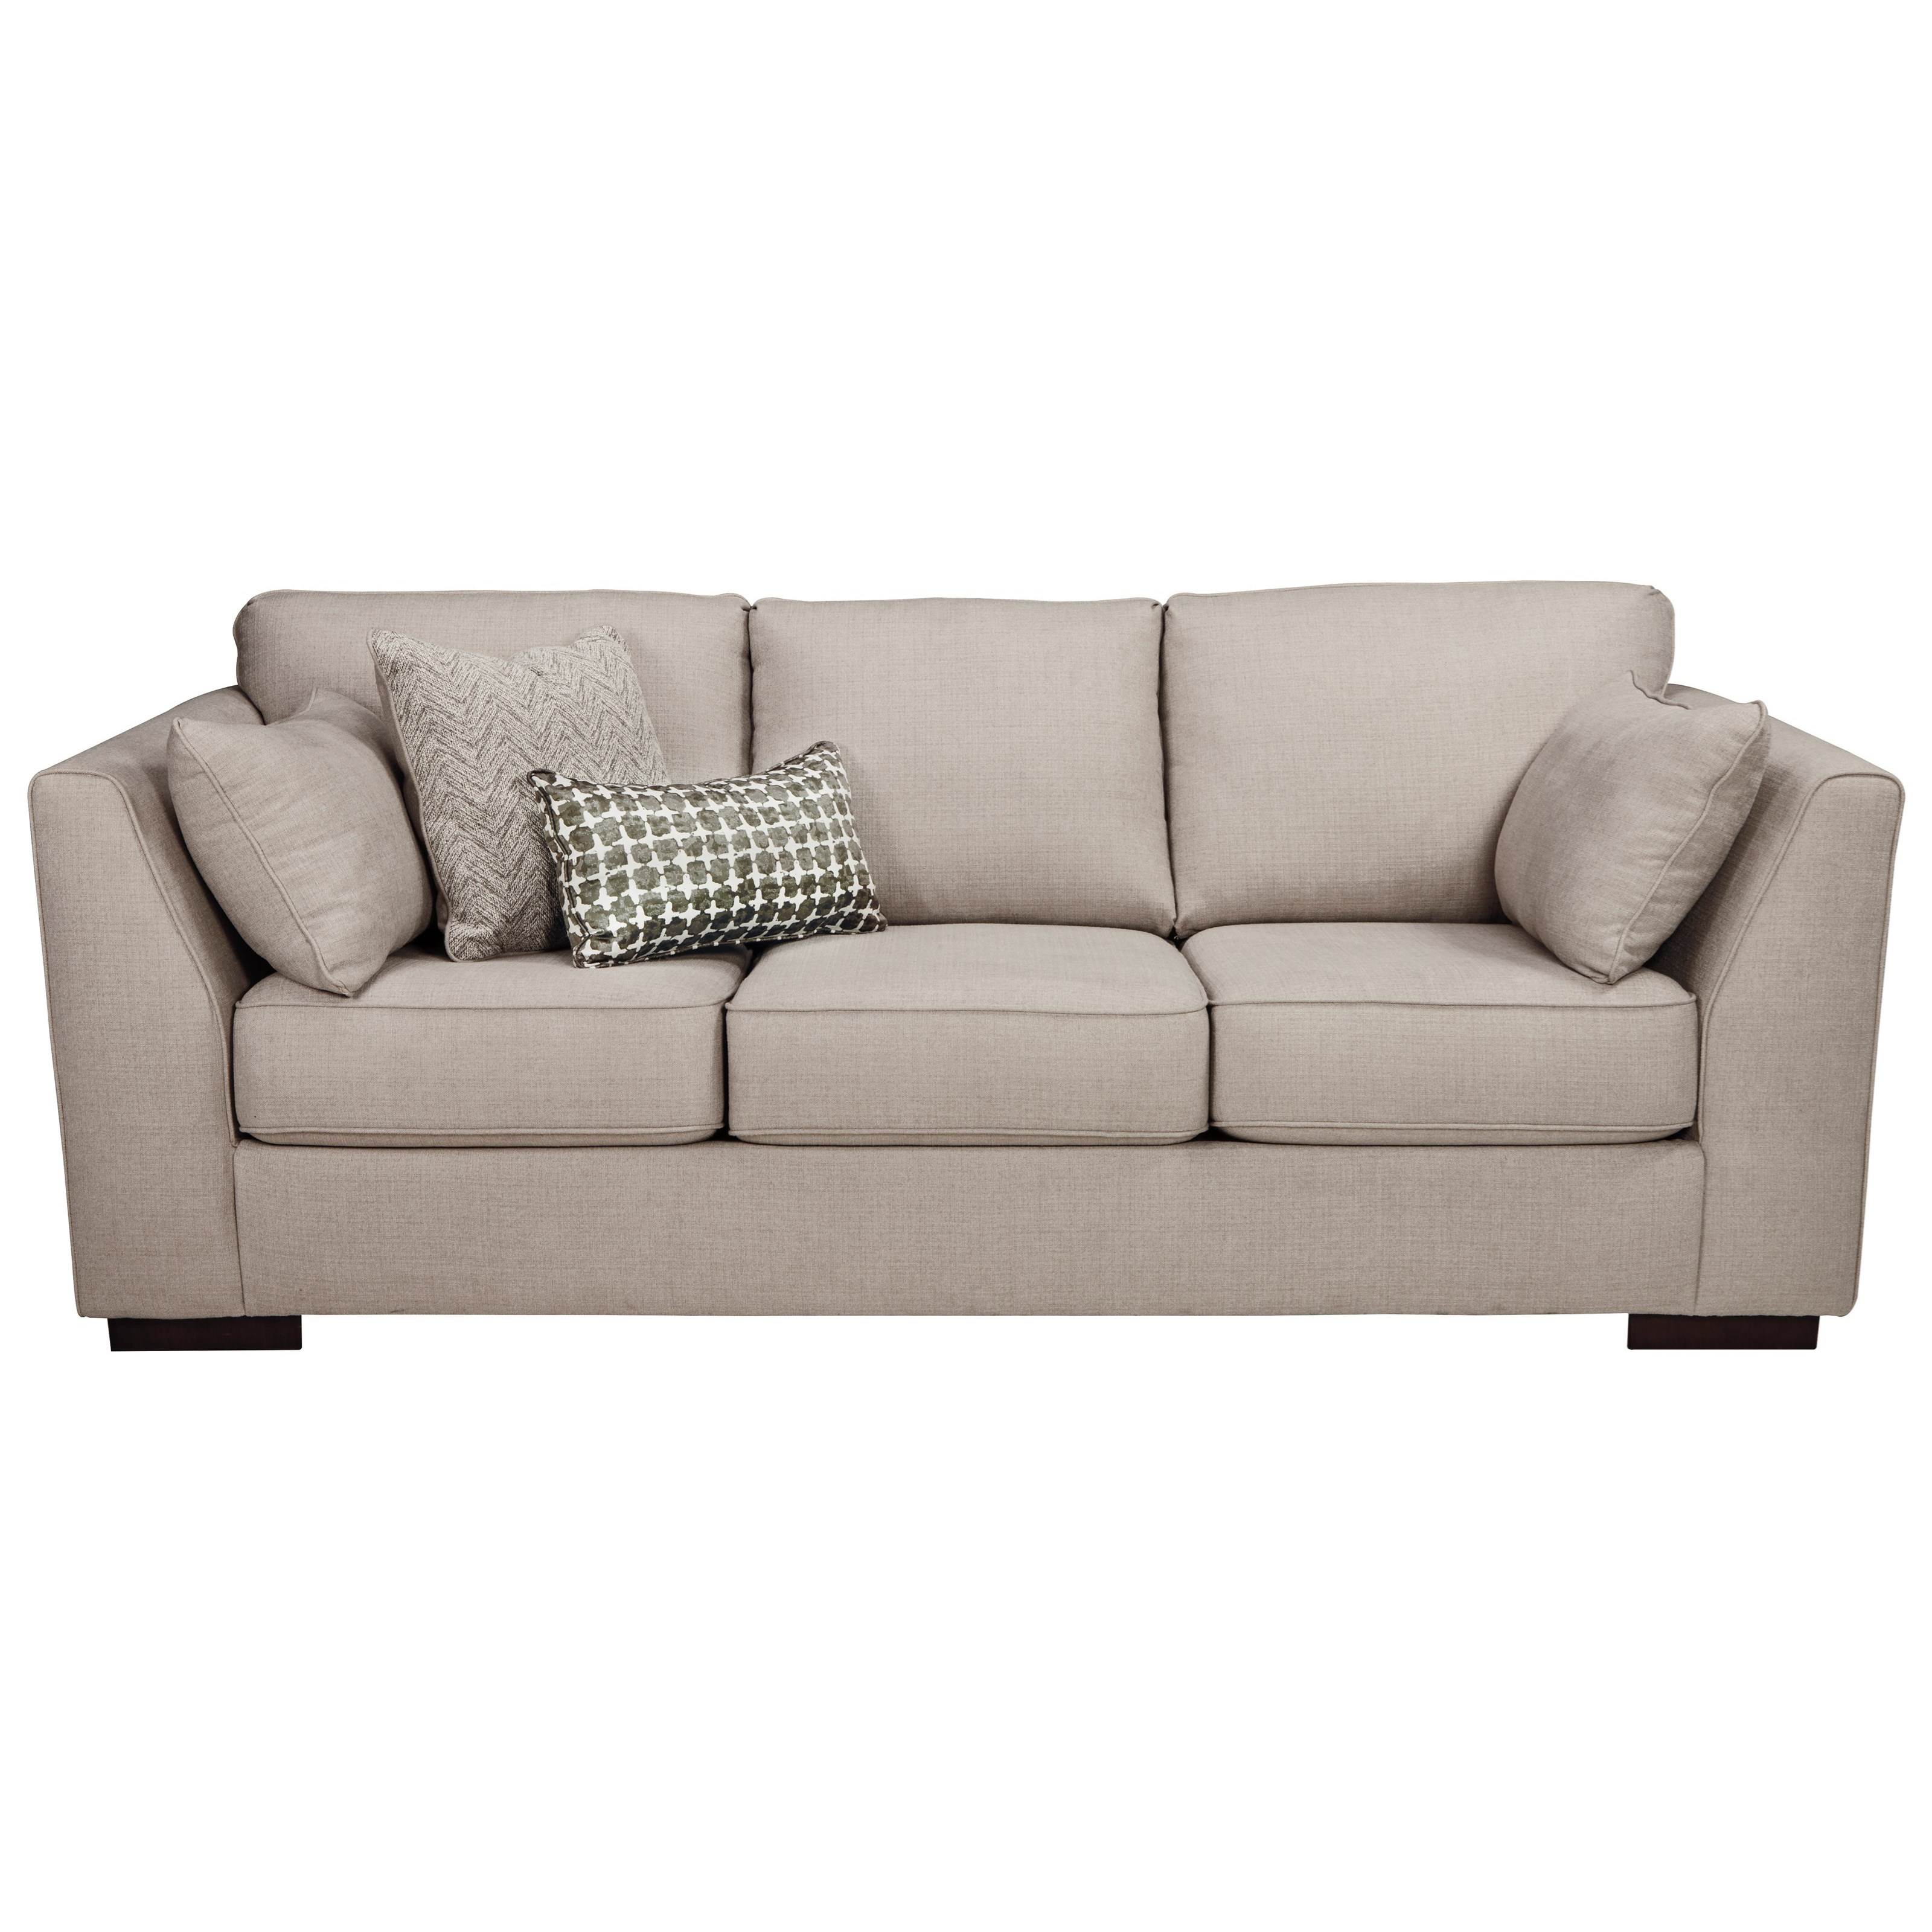 Benchcraft Lainier Sofa - Item Number: 5420238